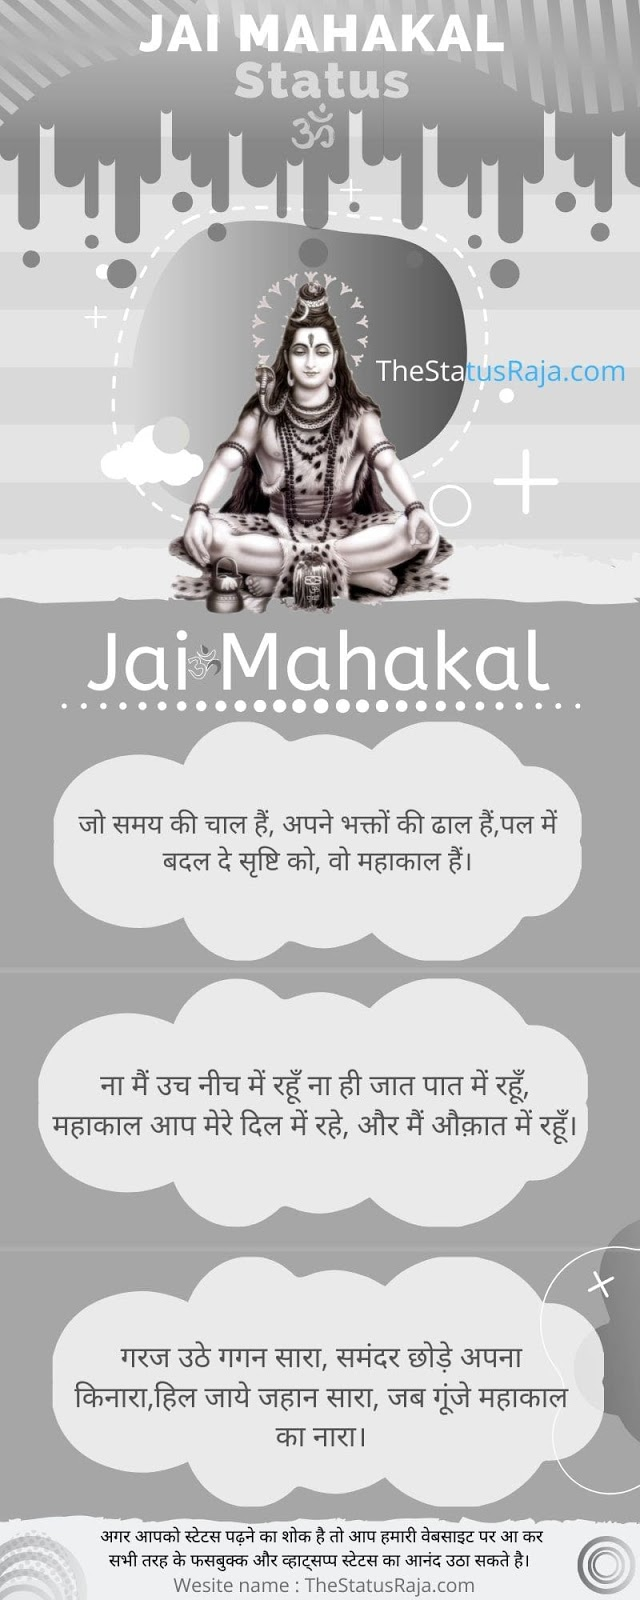 Jai Mahakal Status in Hindi